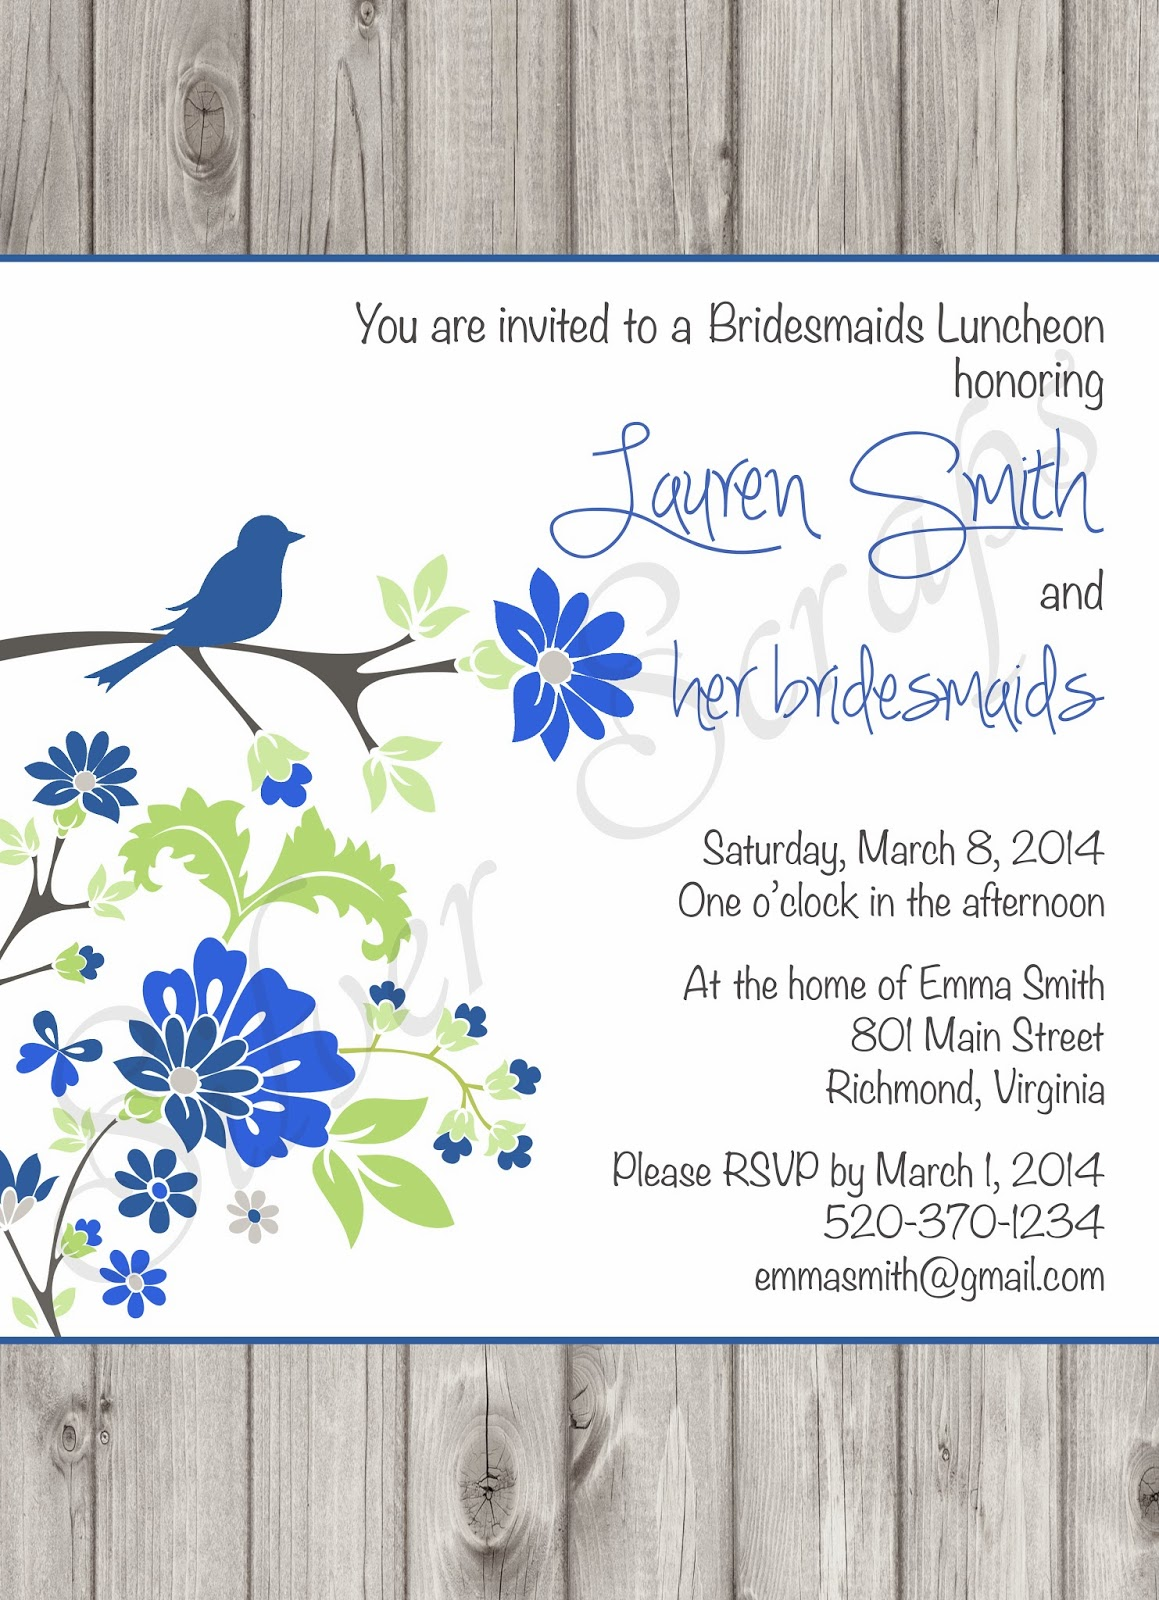 Flowers, Bird on Branch and Wood - Custom Digital Bridal, Baby Shower, Bridesmaids Luncheon Invitation - Navy Royal Blue Green Floral Birch Trees Bark Woodgrain Rustic Outdoors Cottage Barn